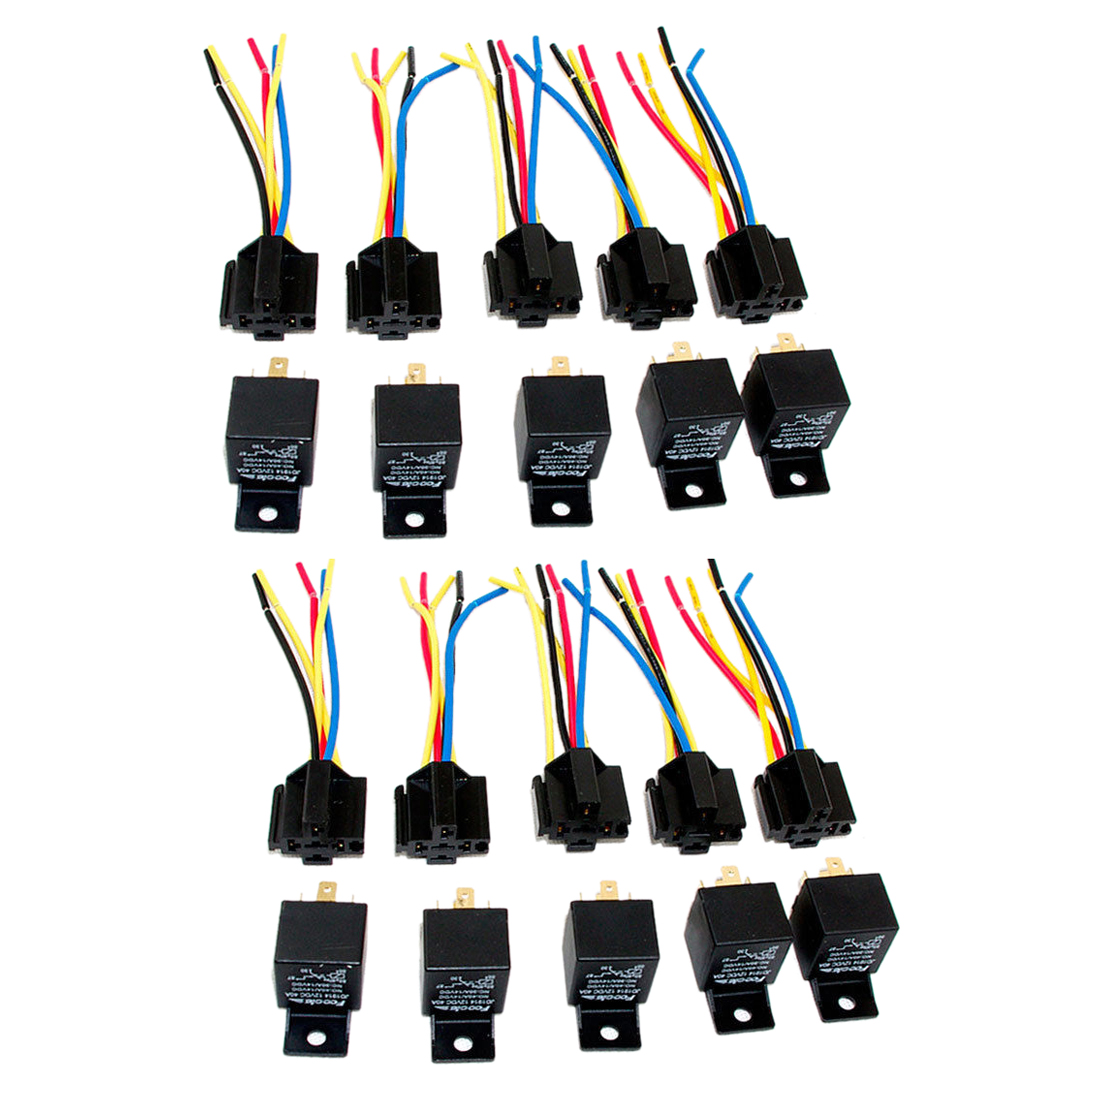 hight resolution of lot10 new 12 volt 40 amp spdt automotive relay with wires harness socket in relays from home improvement on aliexpress com alibaba group